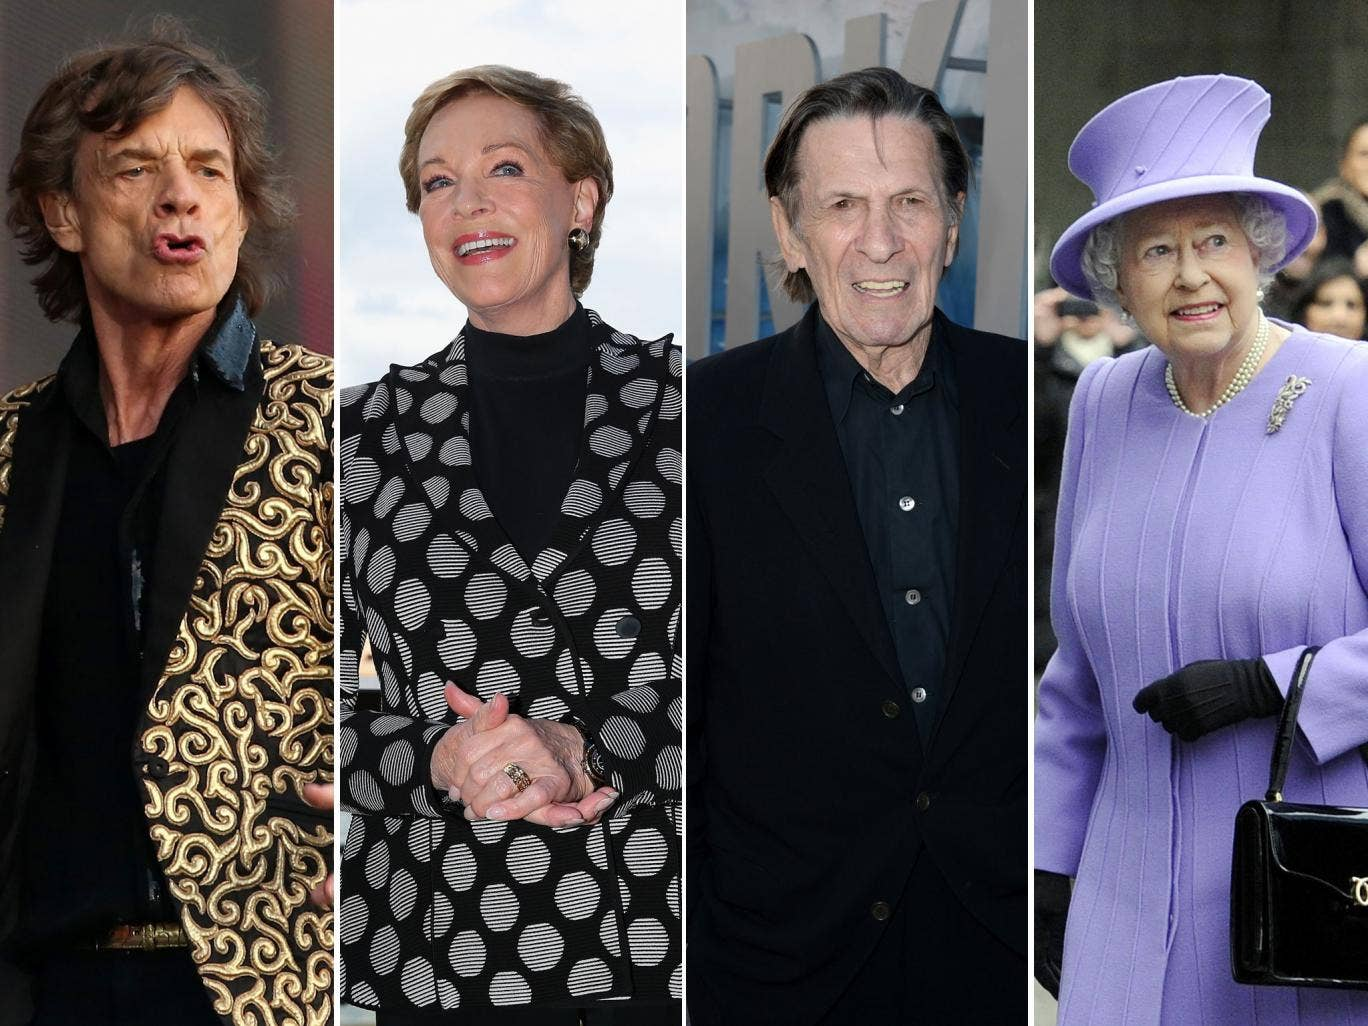 Jagger joins the GG club. Fellow members are: Julie Andrews, star of The Sound of Music; Leonard Nimoy, Star Trek's Dr Spock and Queen Elizabeth II